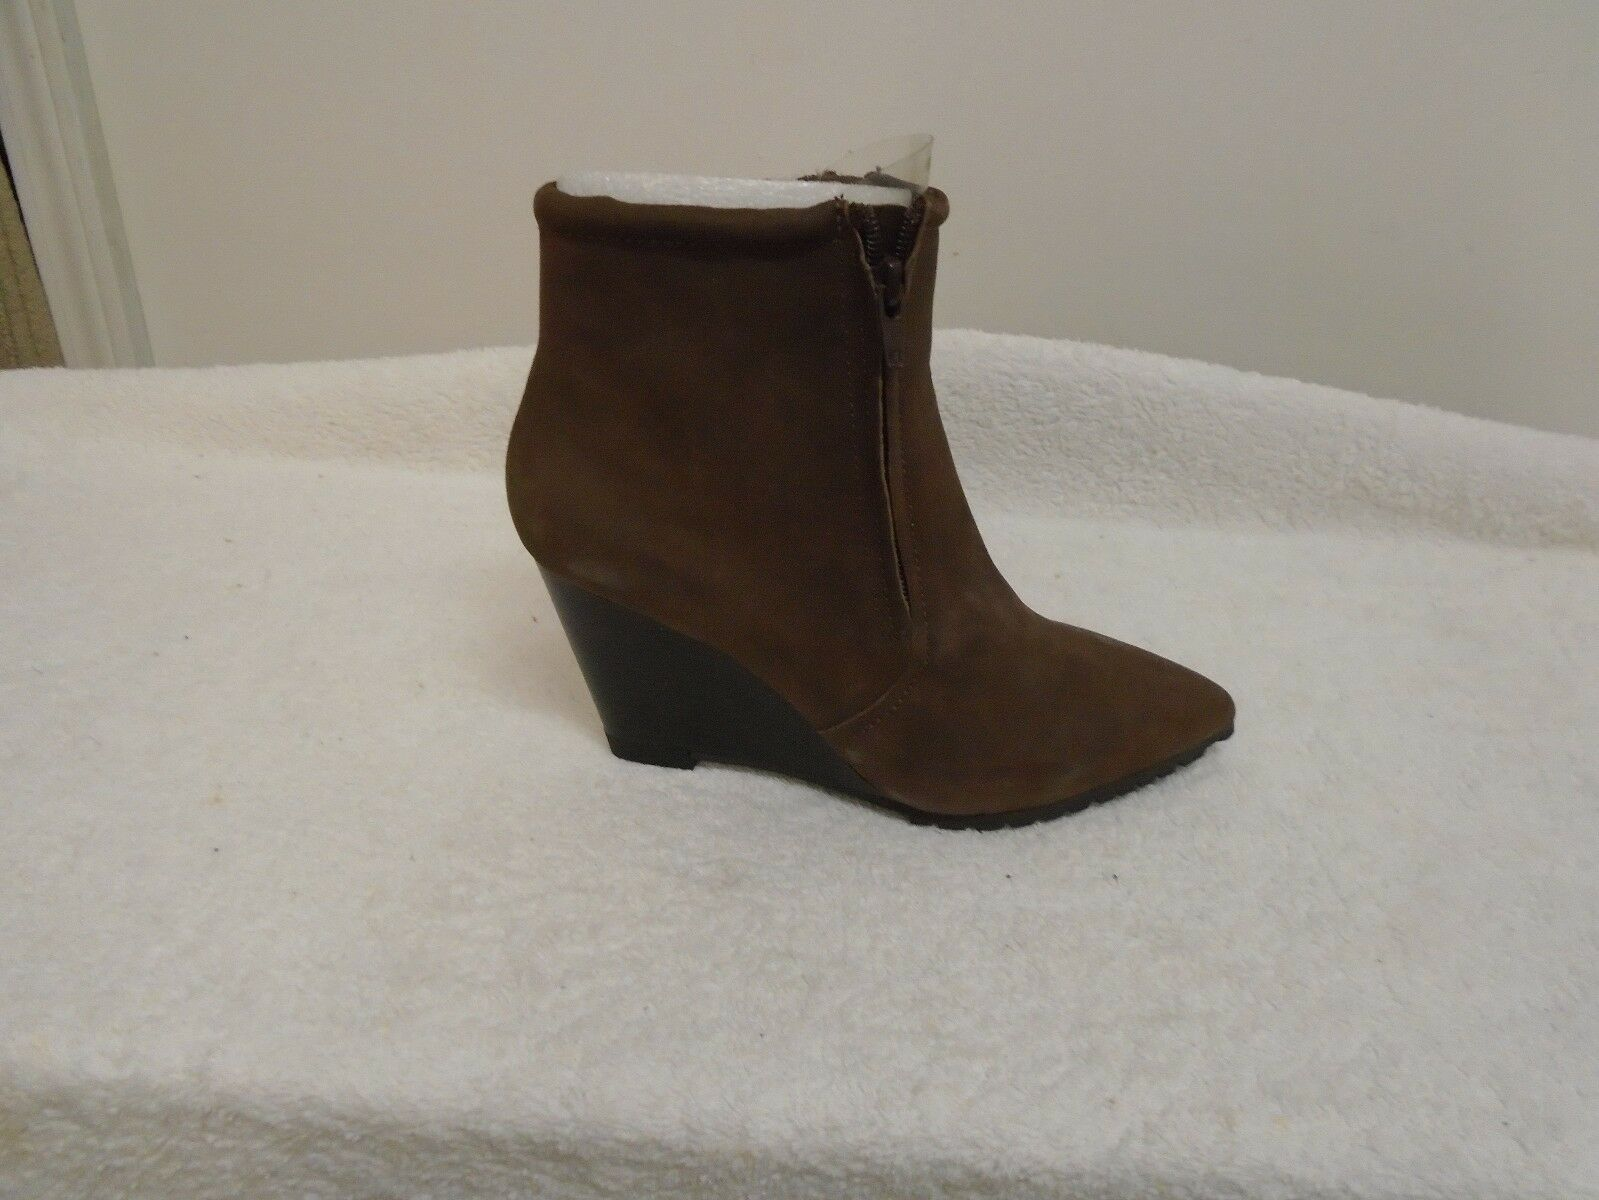 H by Halston Leather Double Zipper Wedge Ankle Boots - Hal BROWN  10M NEW